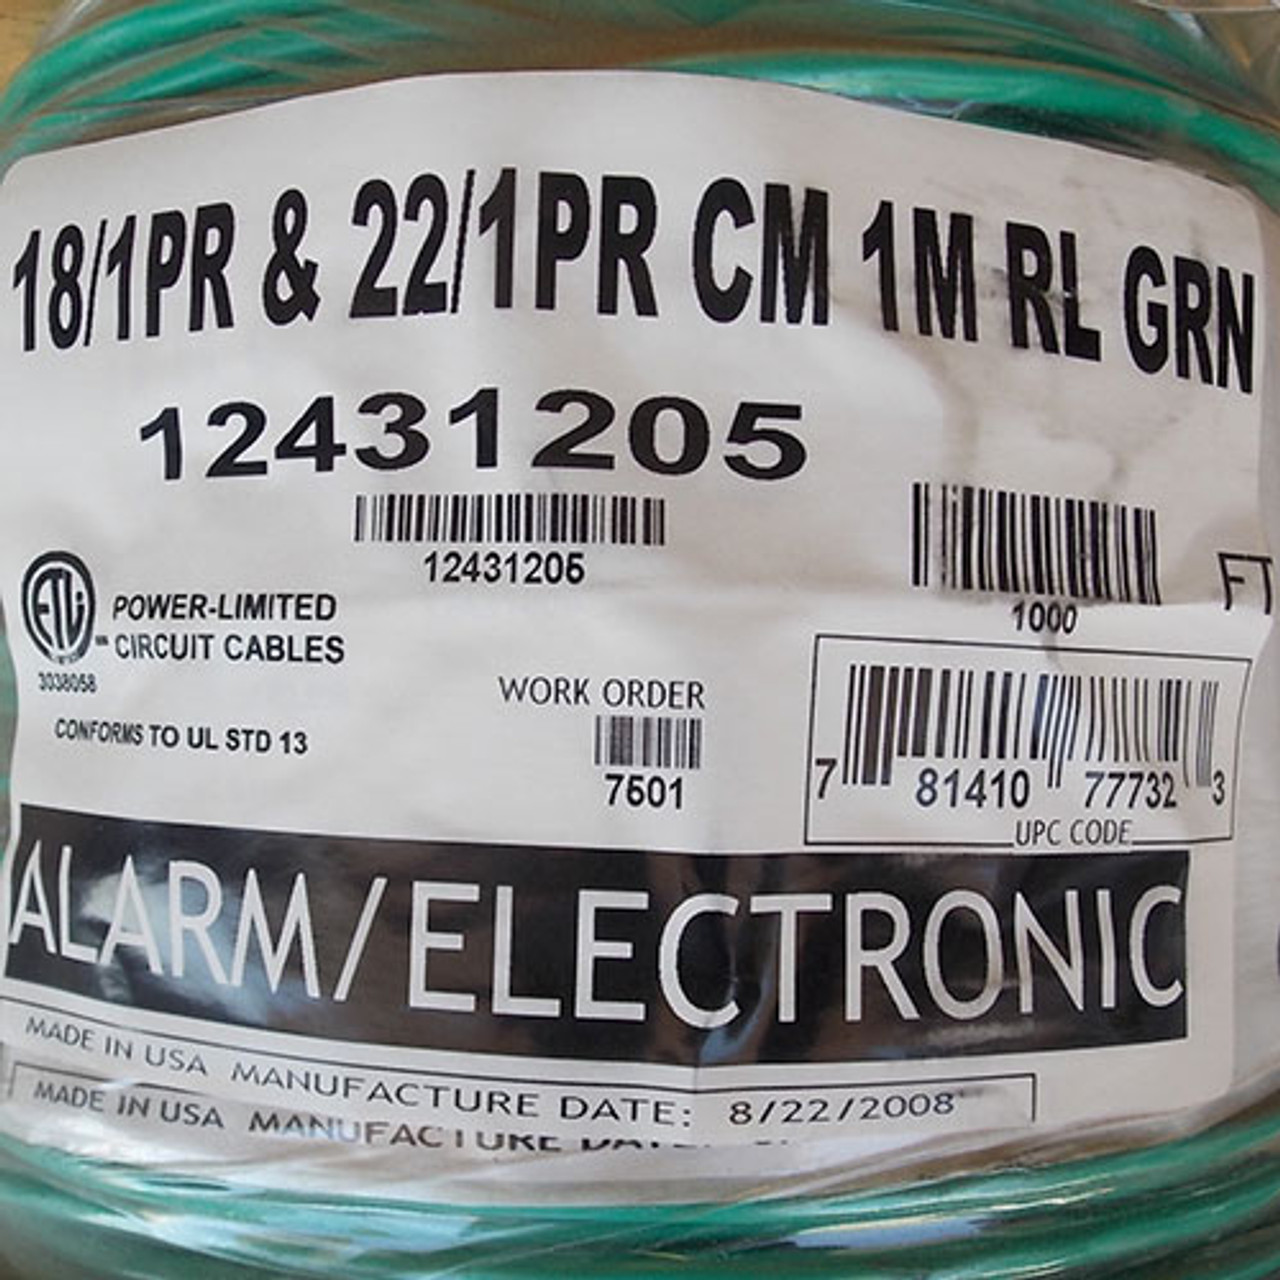 Honeywell 1000' Alarm/Electronic Wire 18/1PR & 22/1PR CM 1M RL GRN Wiring for Low Volt - New